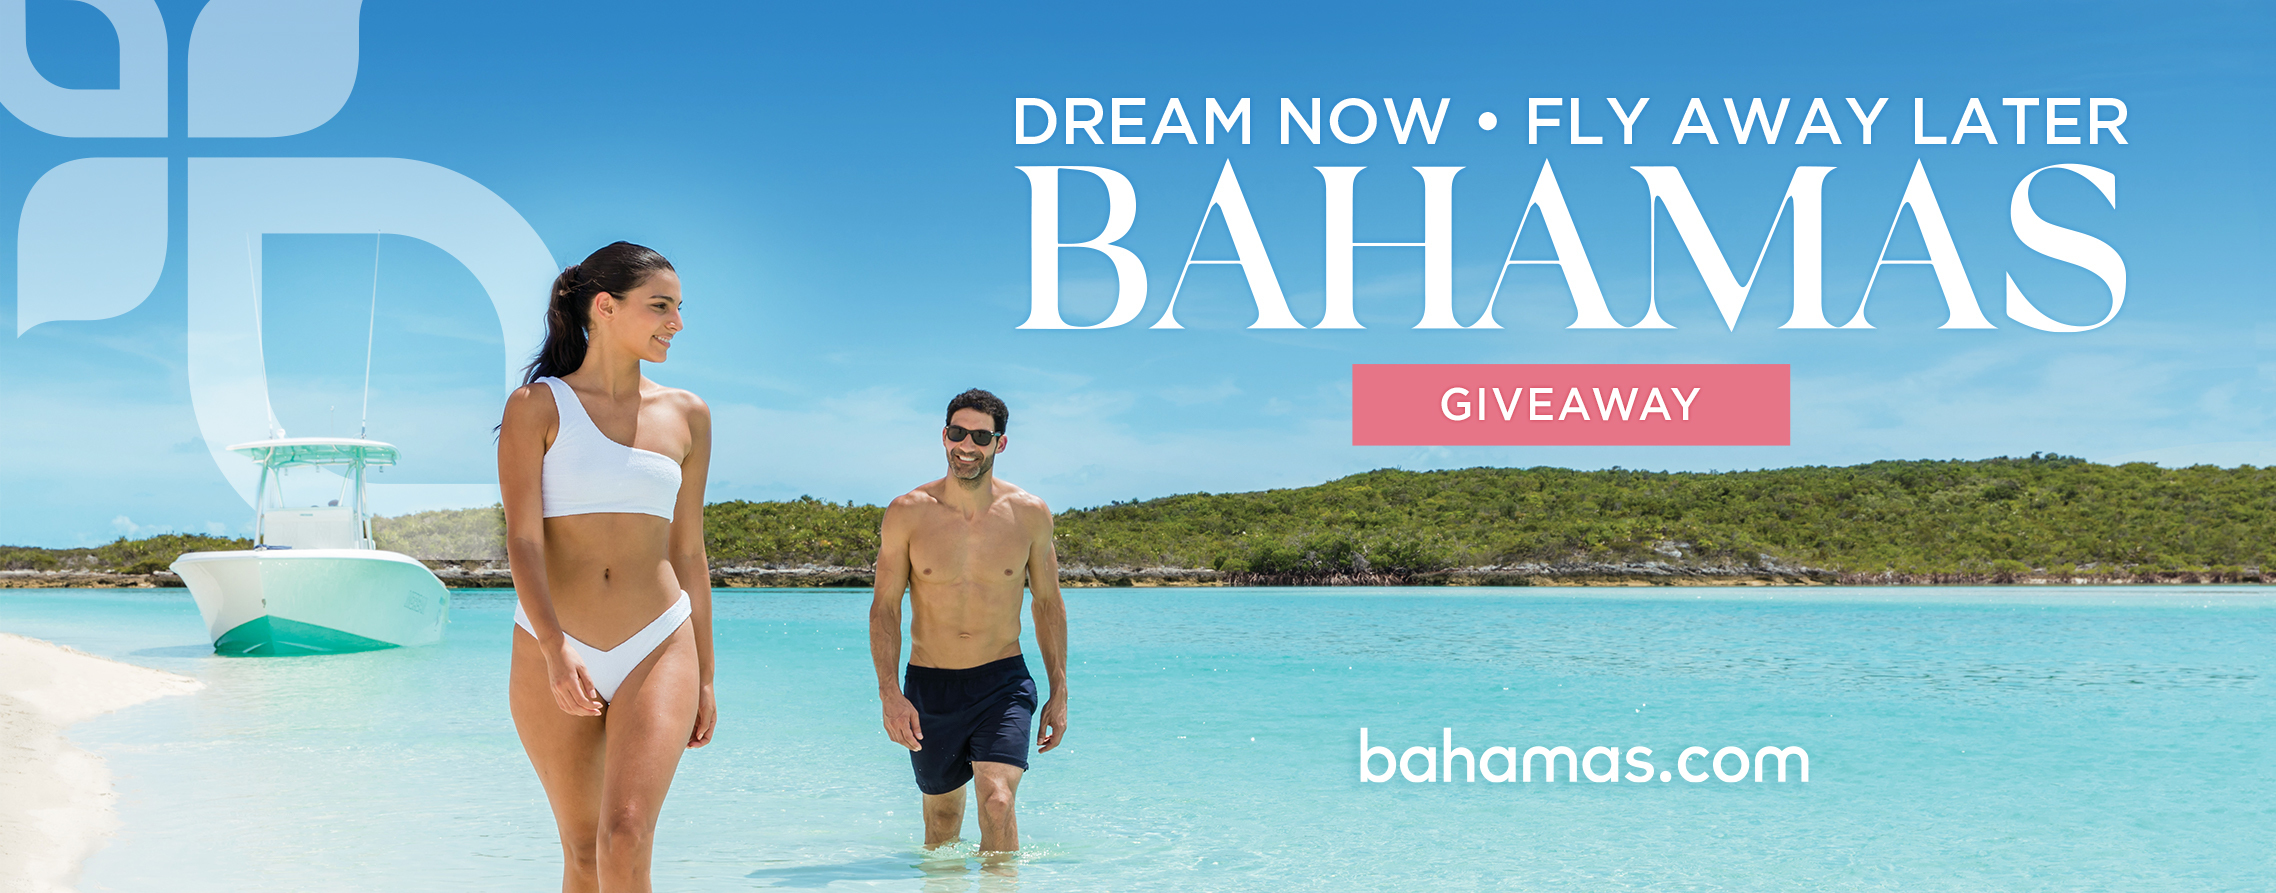 Bahamas Dream Now Fly Away Later Giveaway